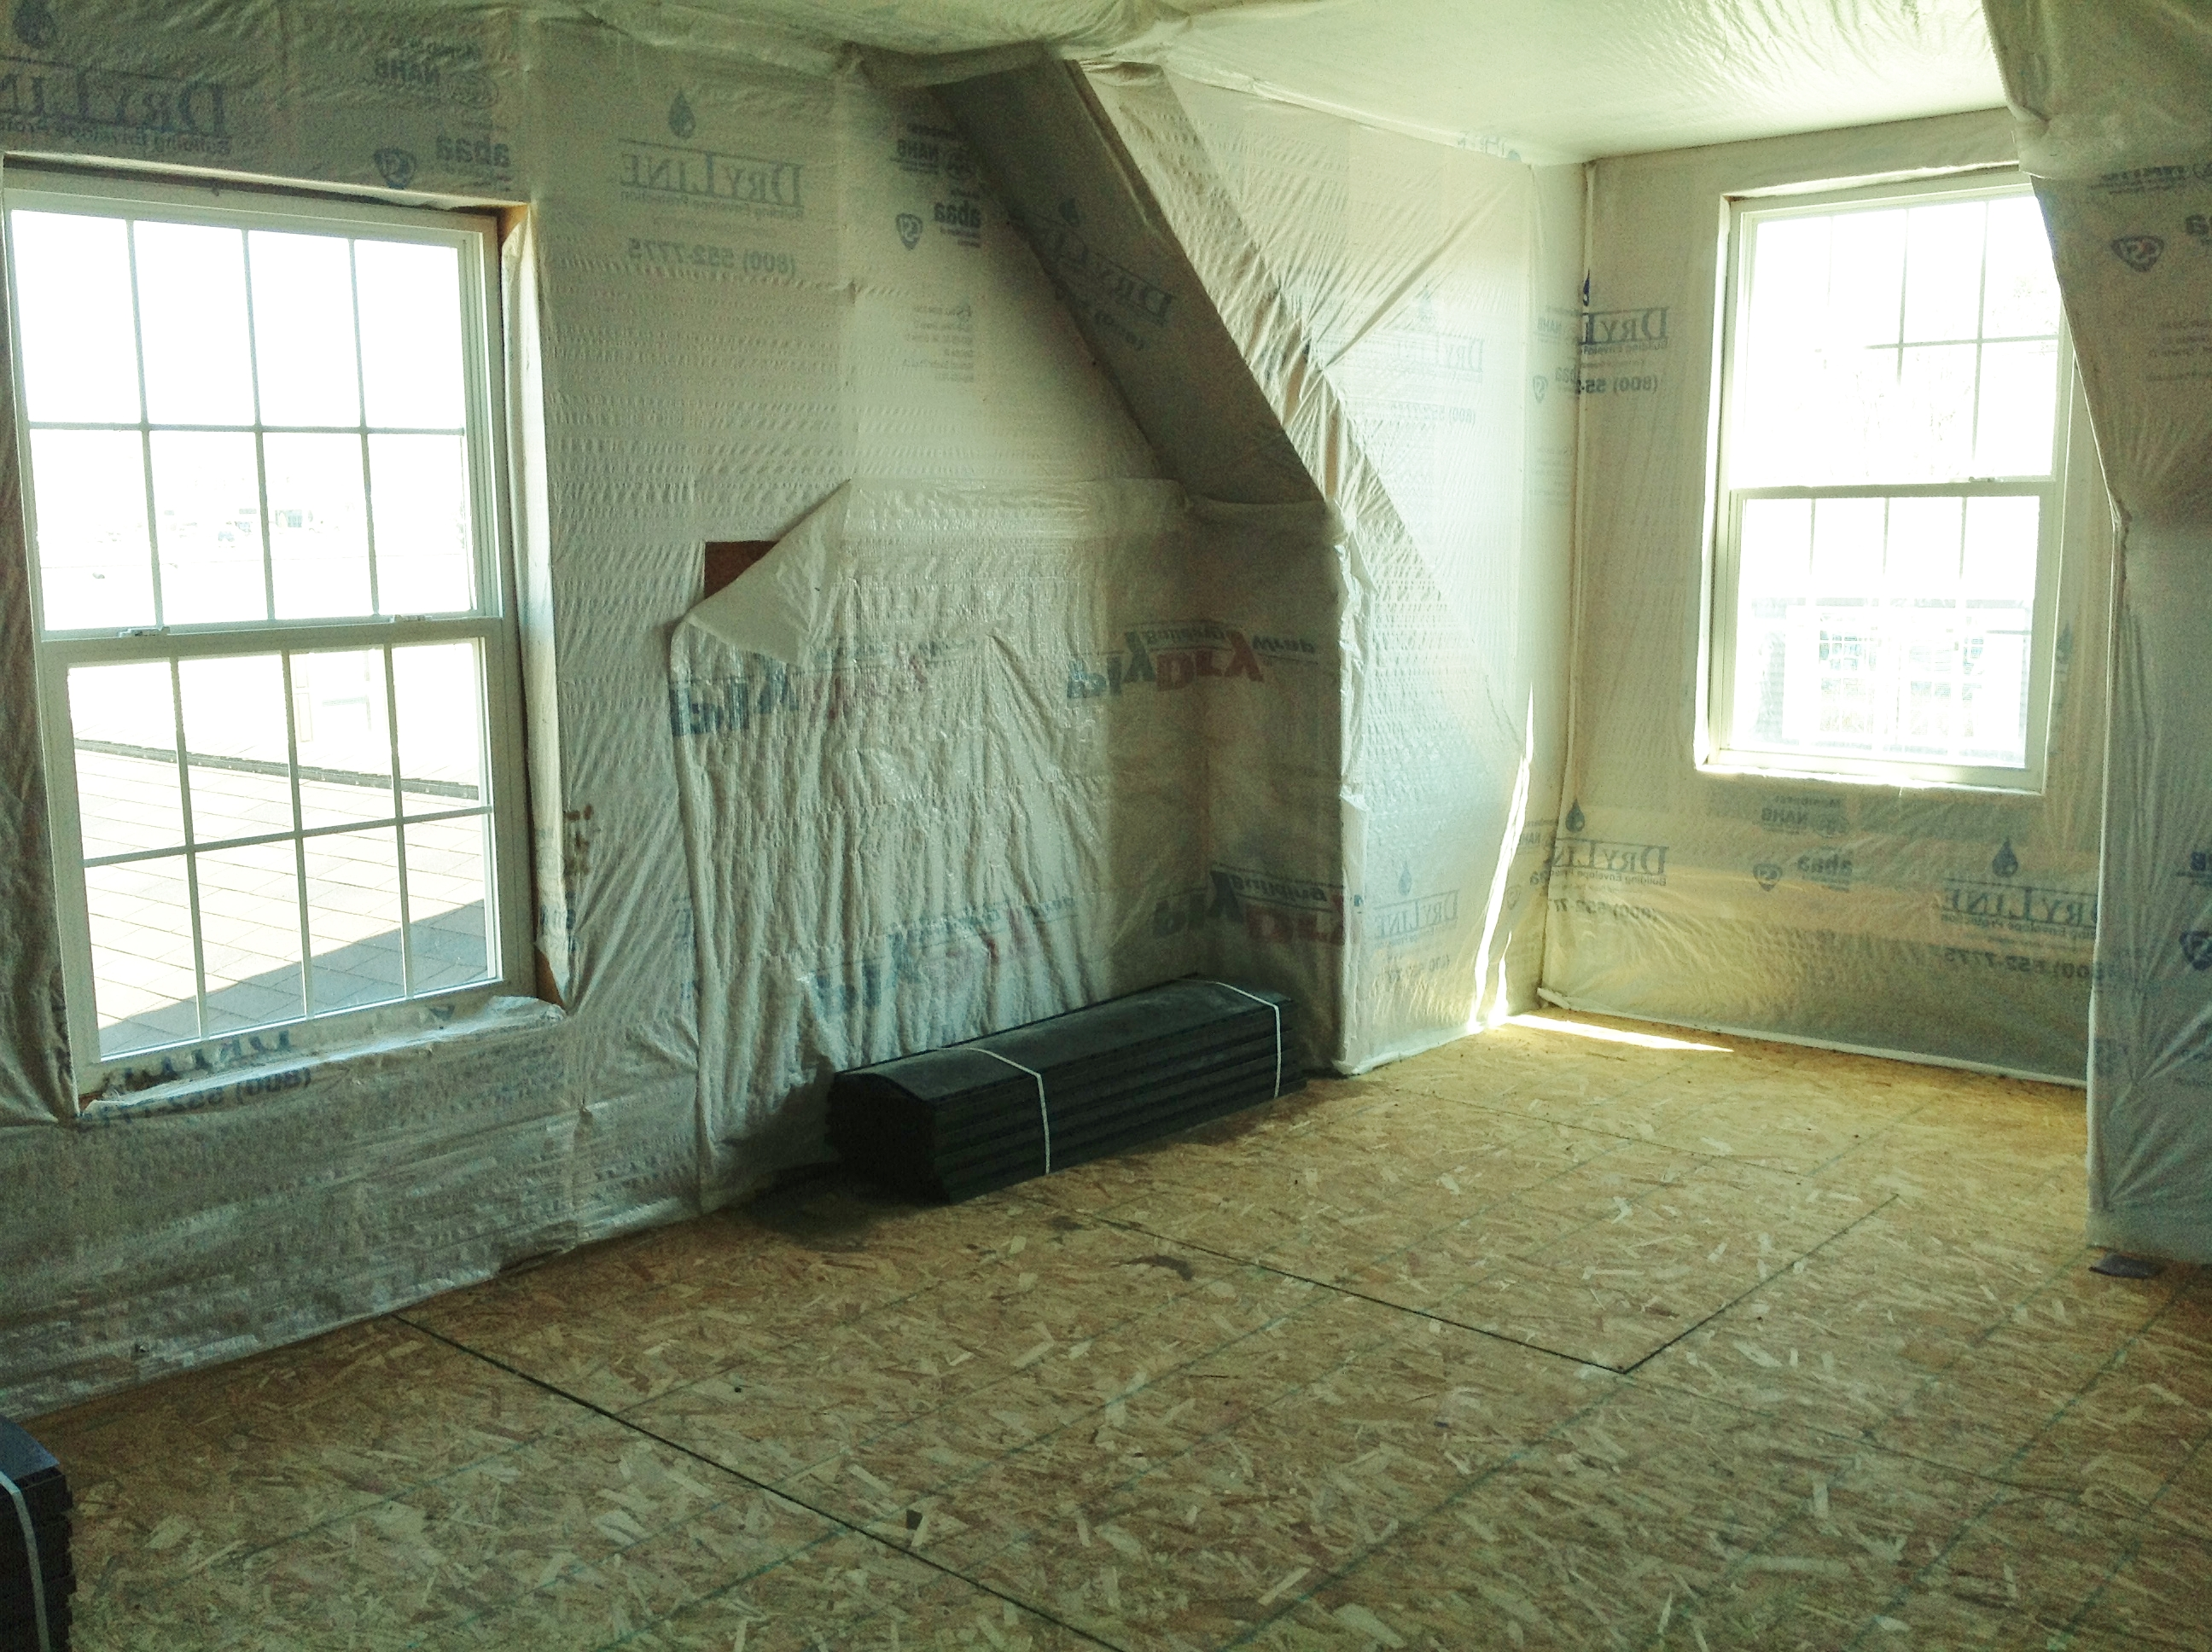 Plenty of room in this attic space.